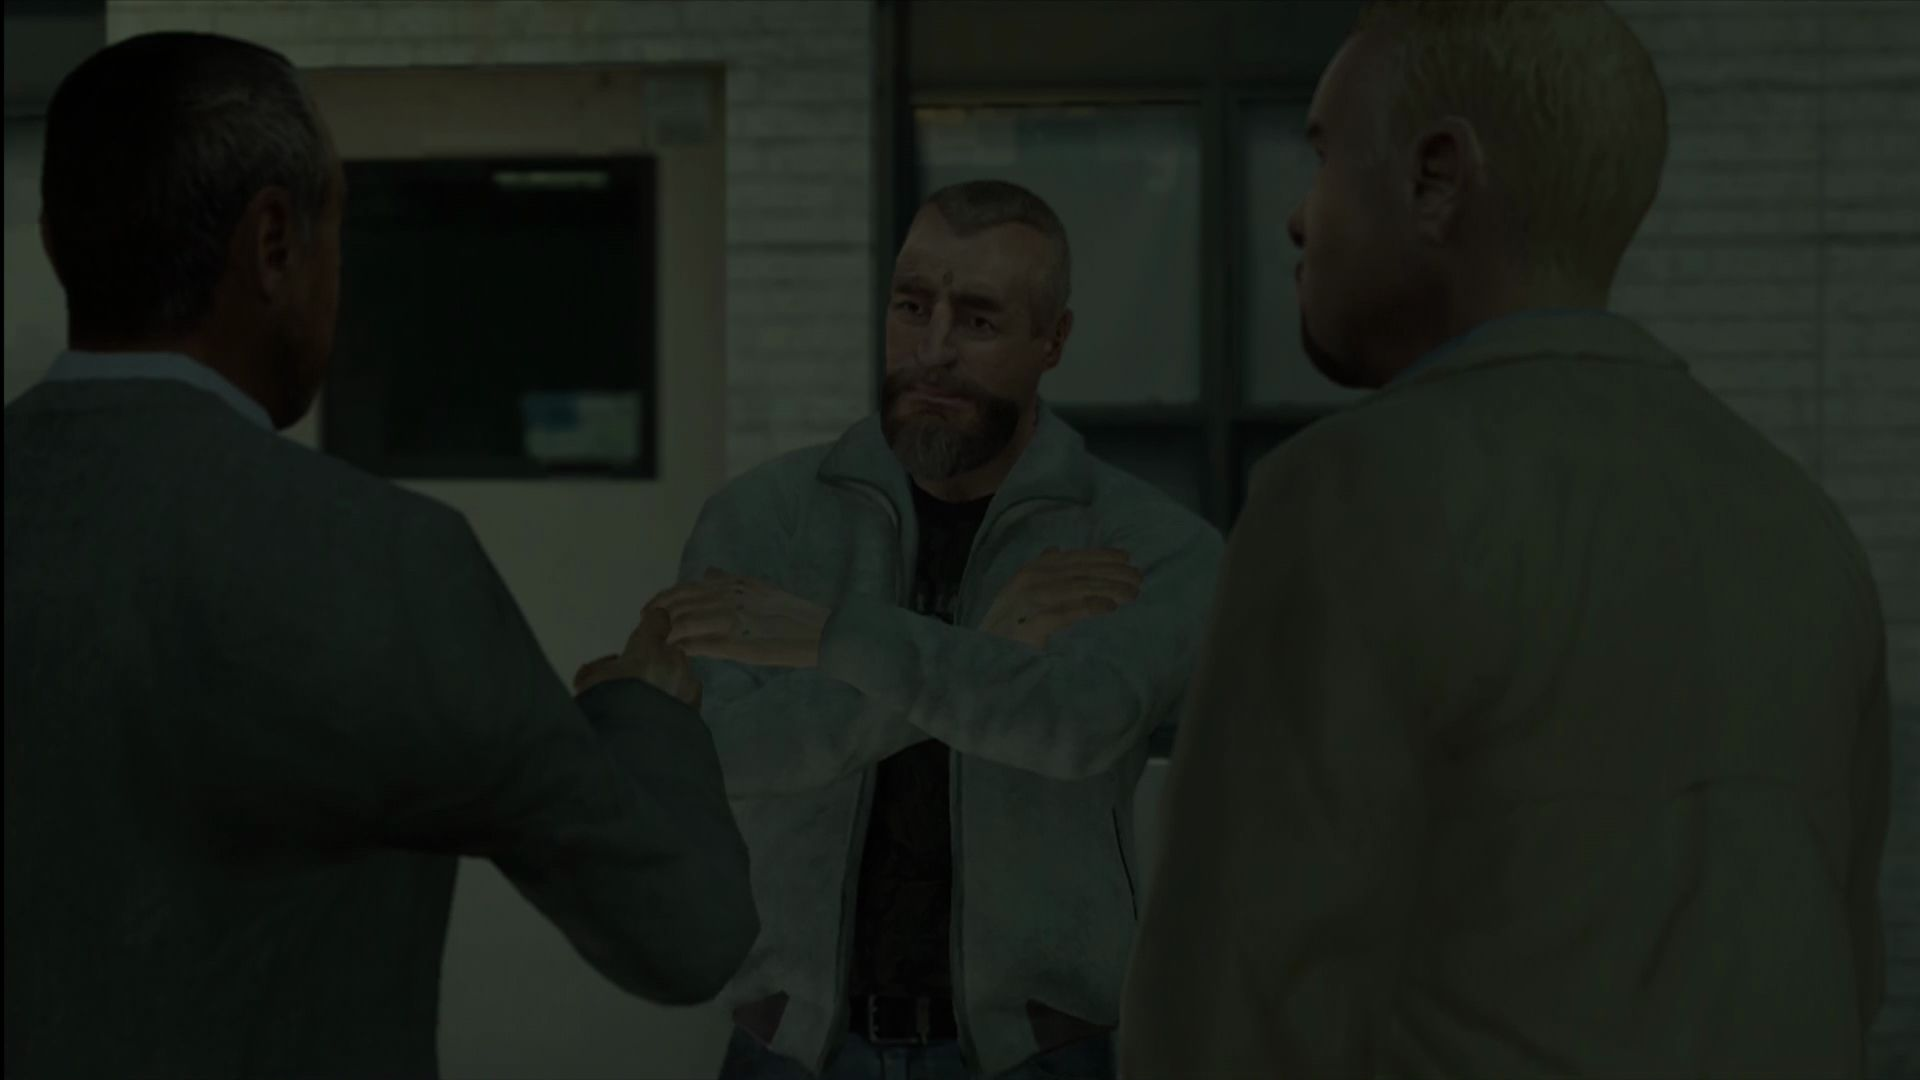 Grand Theft Auto IV: The Lost and Damned Xbox 360 And President Billy Grey, convincing his parole officer that he's now clean and serene.